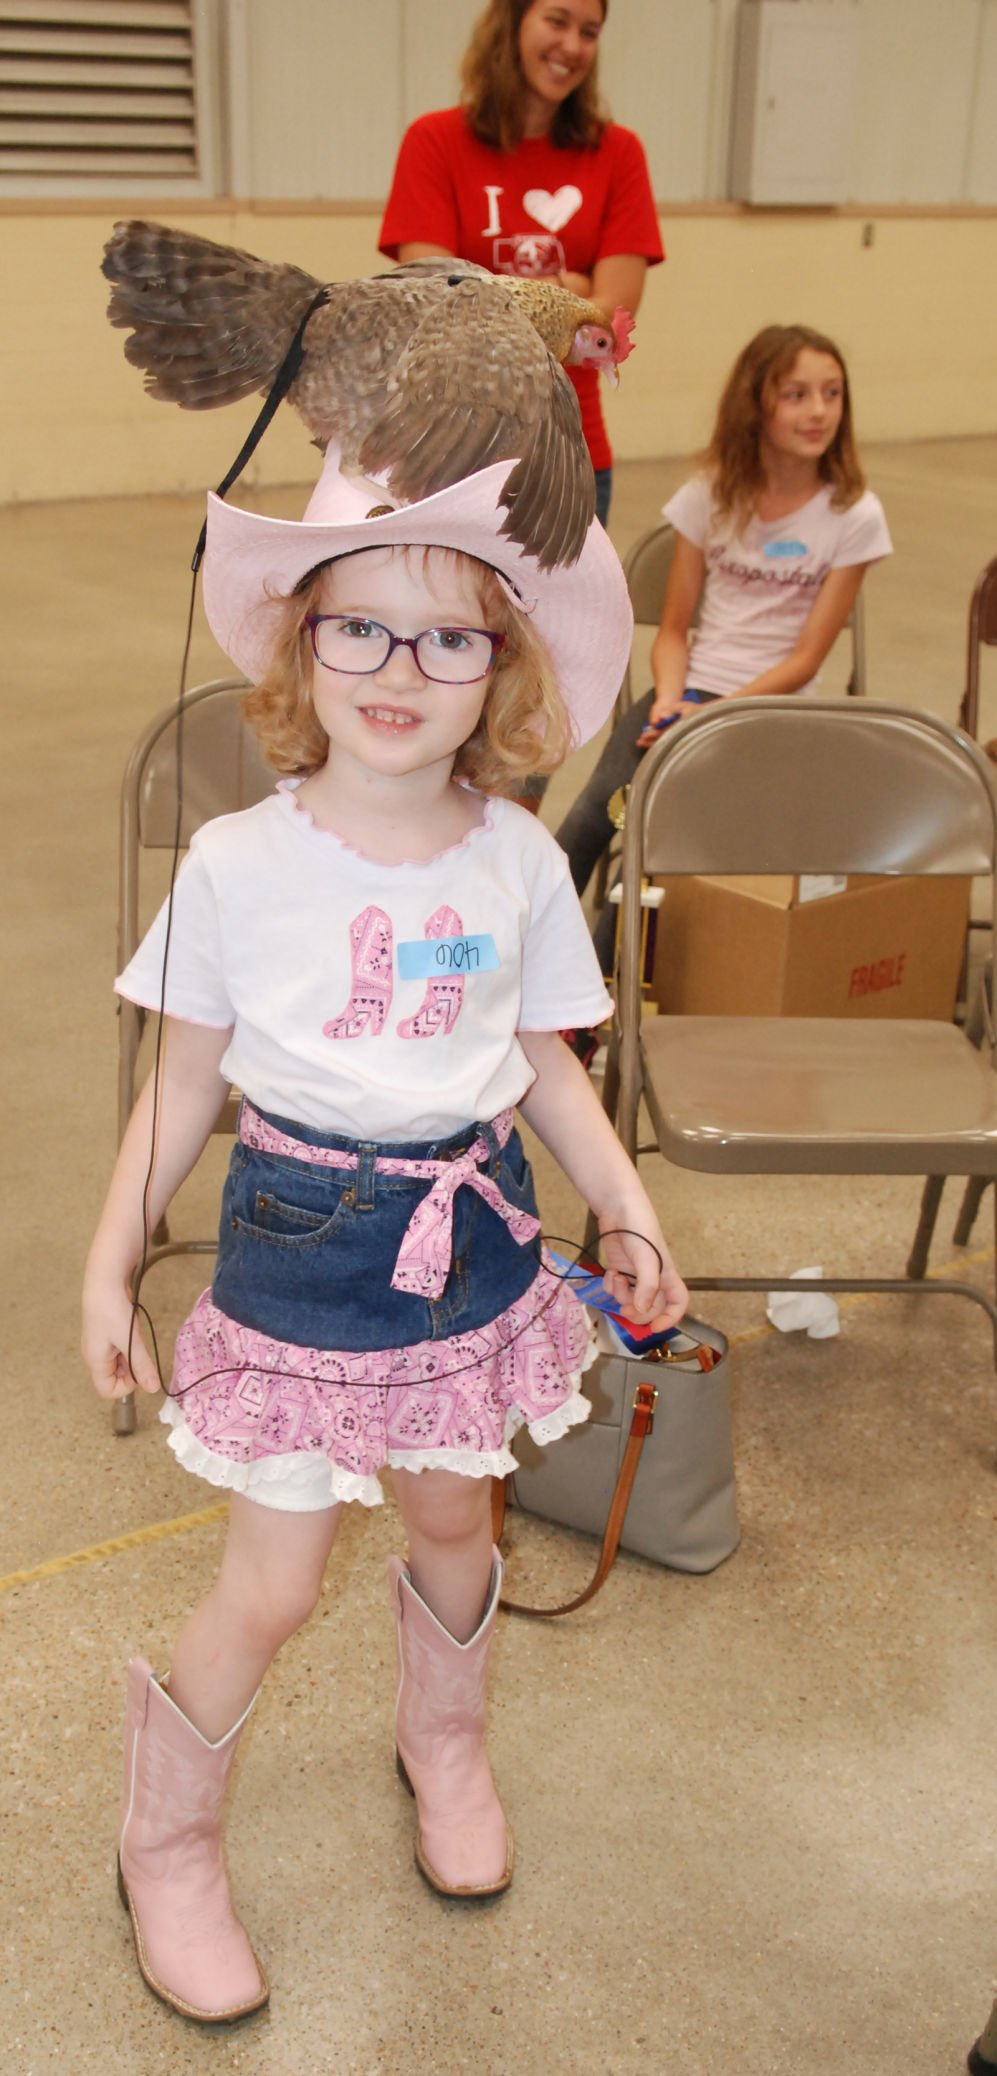 Little girl with chicken on her hat at city pet show